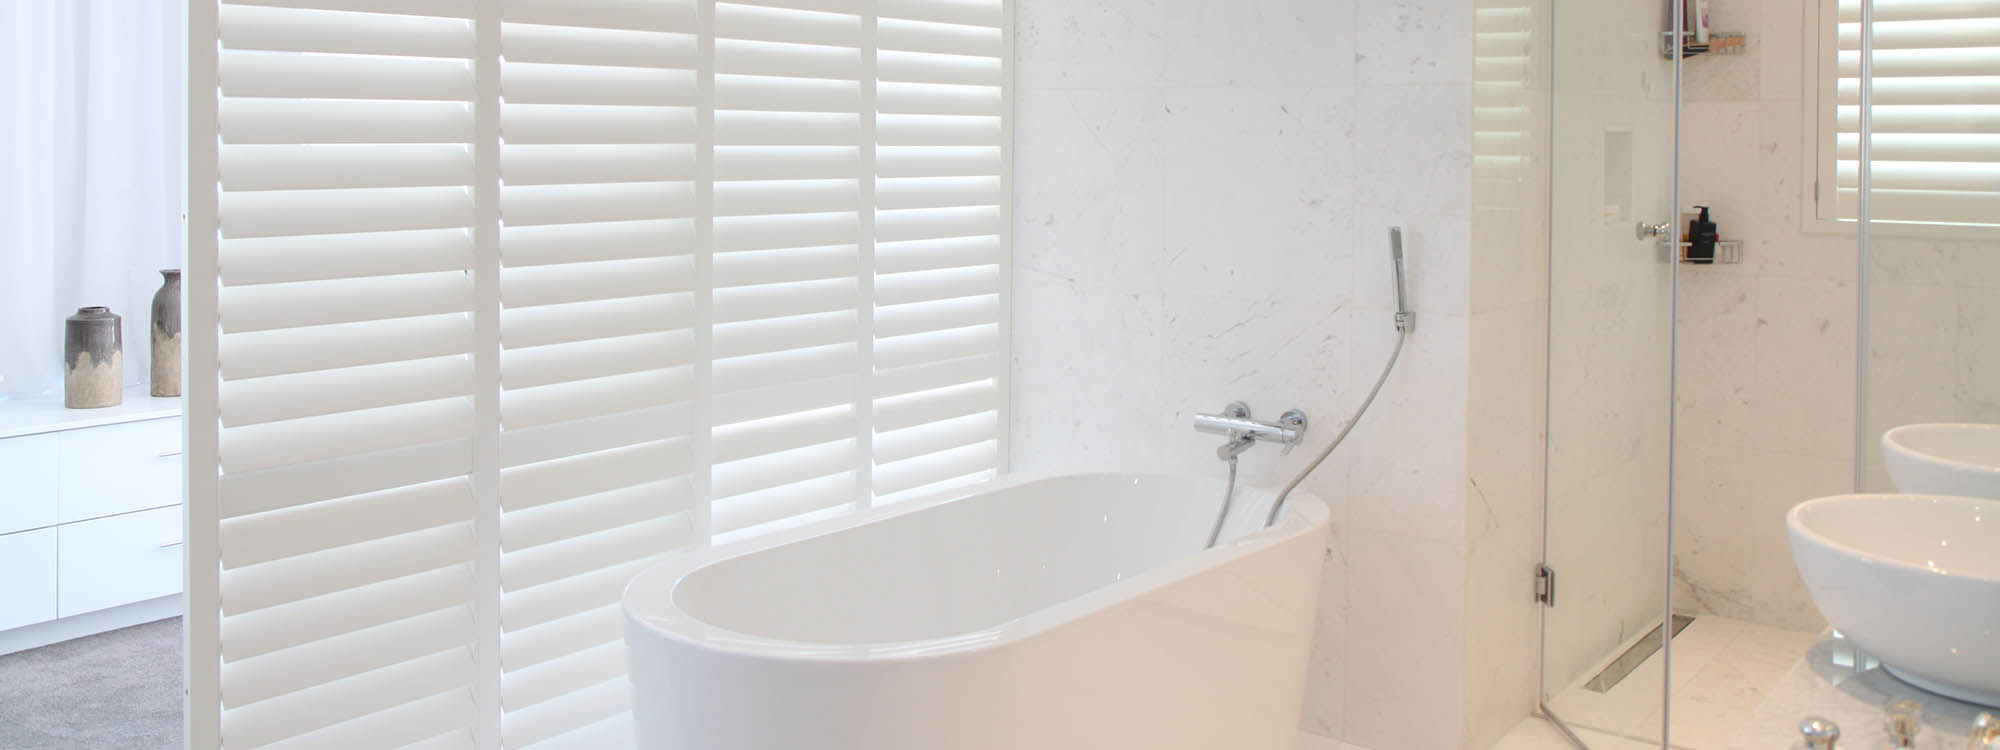 Woodburg-shutters-bathroom-white-finishes